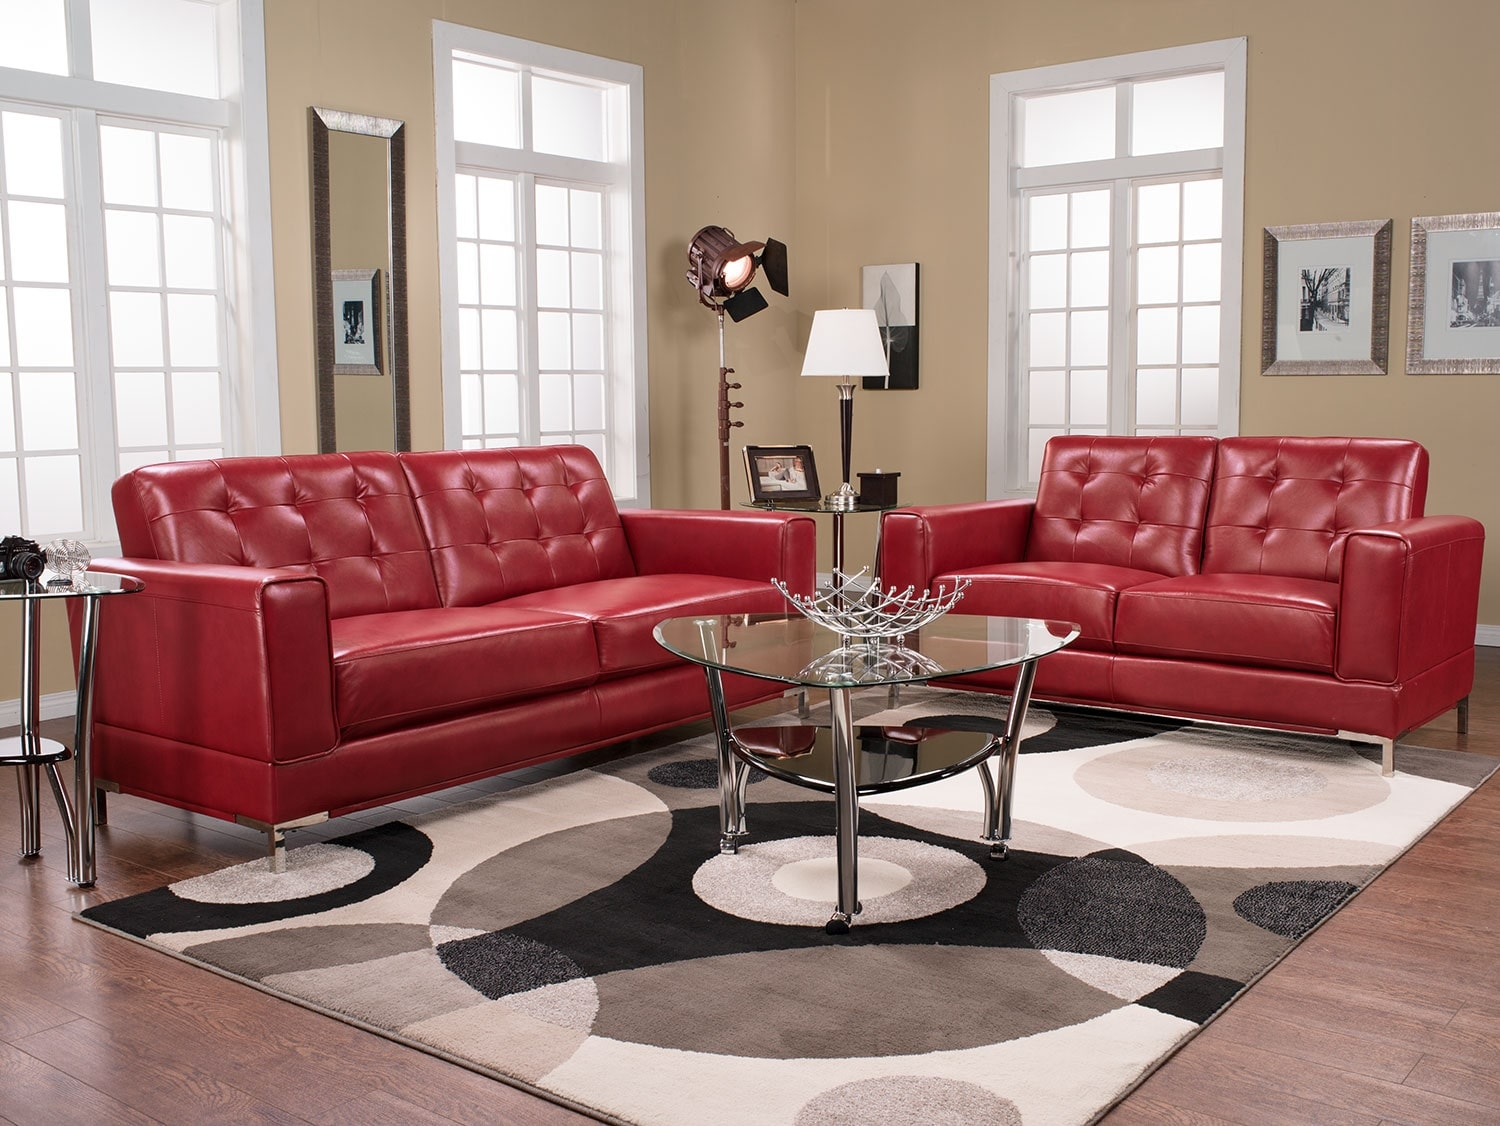 myer leather look fabric sofa red the brick. Black Bedroom Furniture Sets. Home Design Ideas